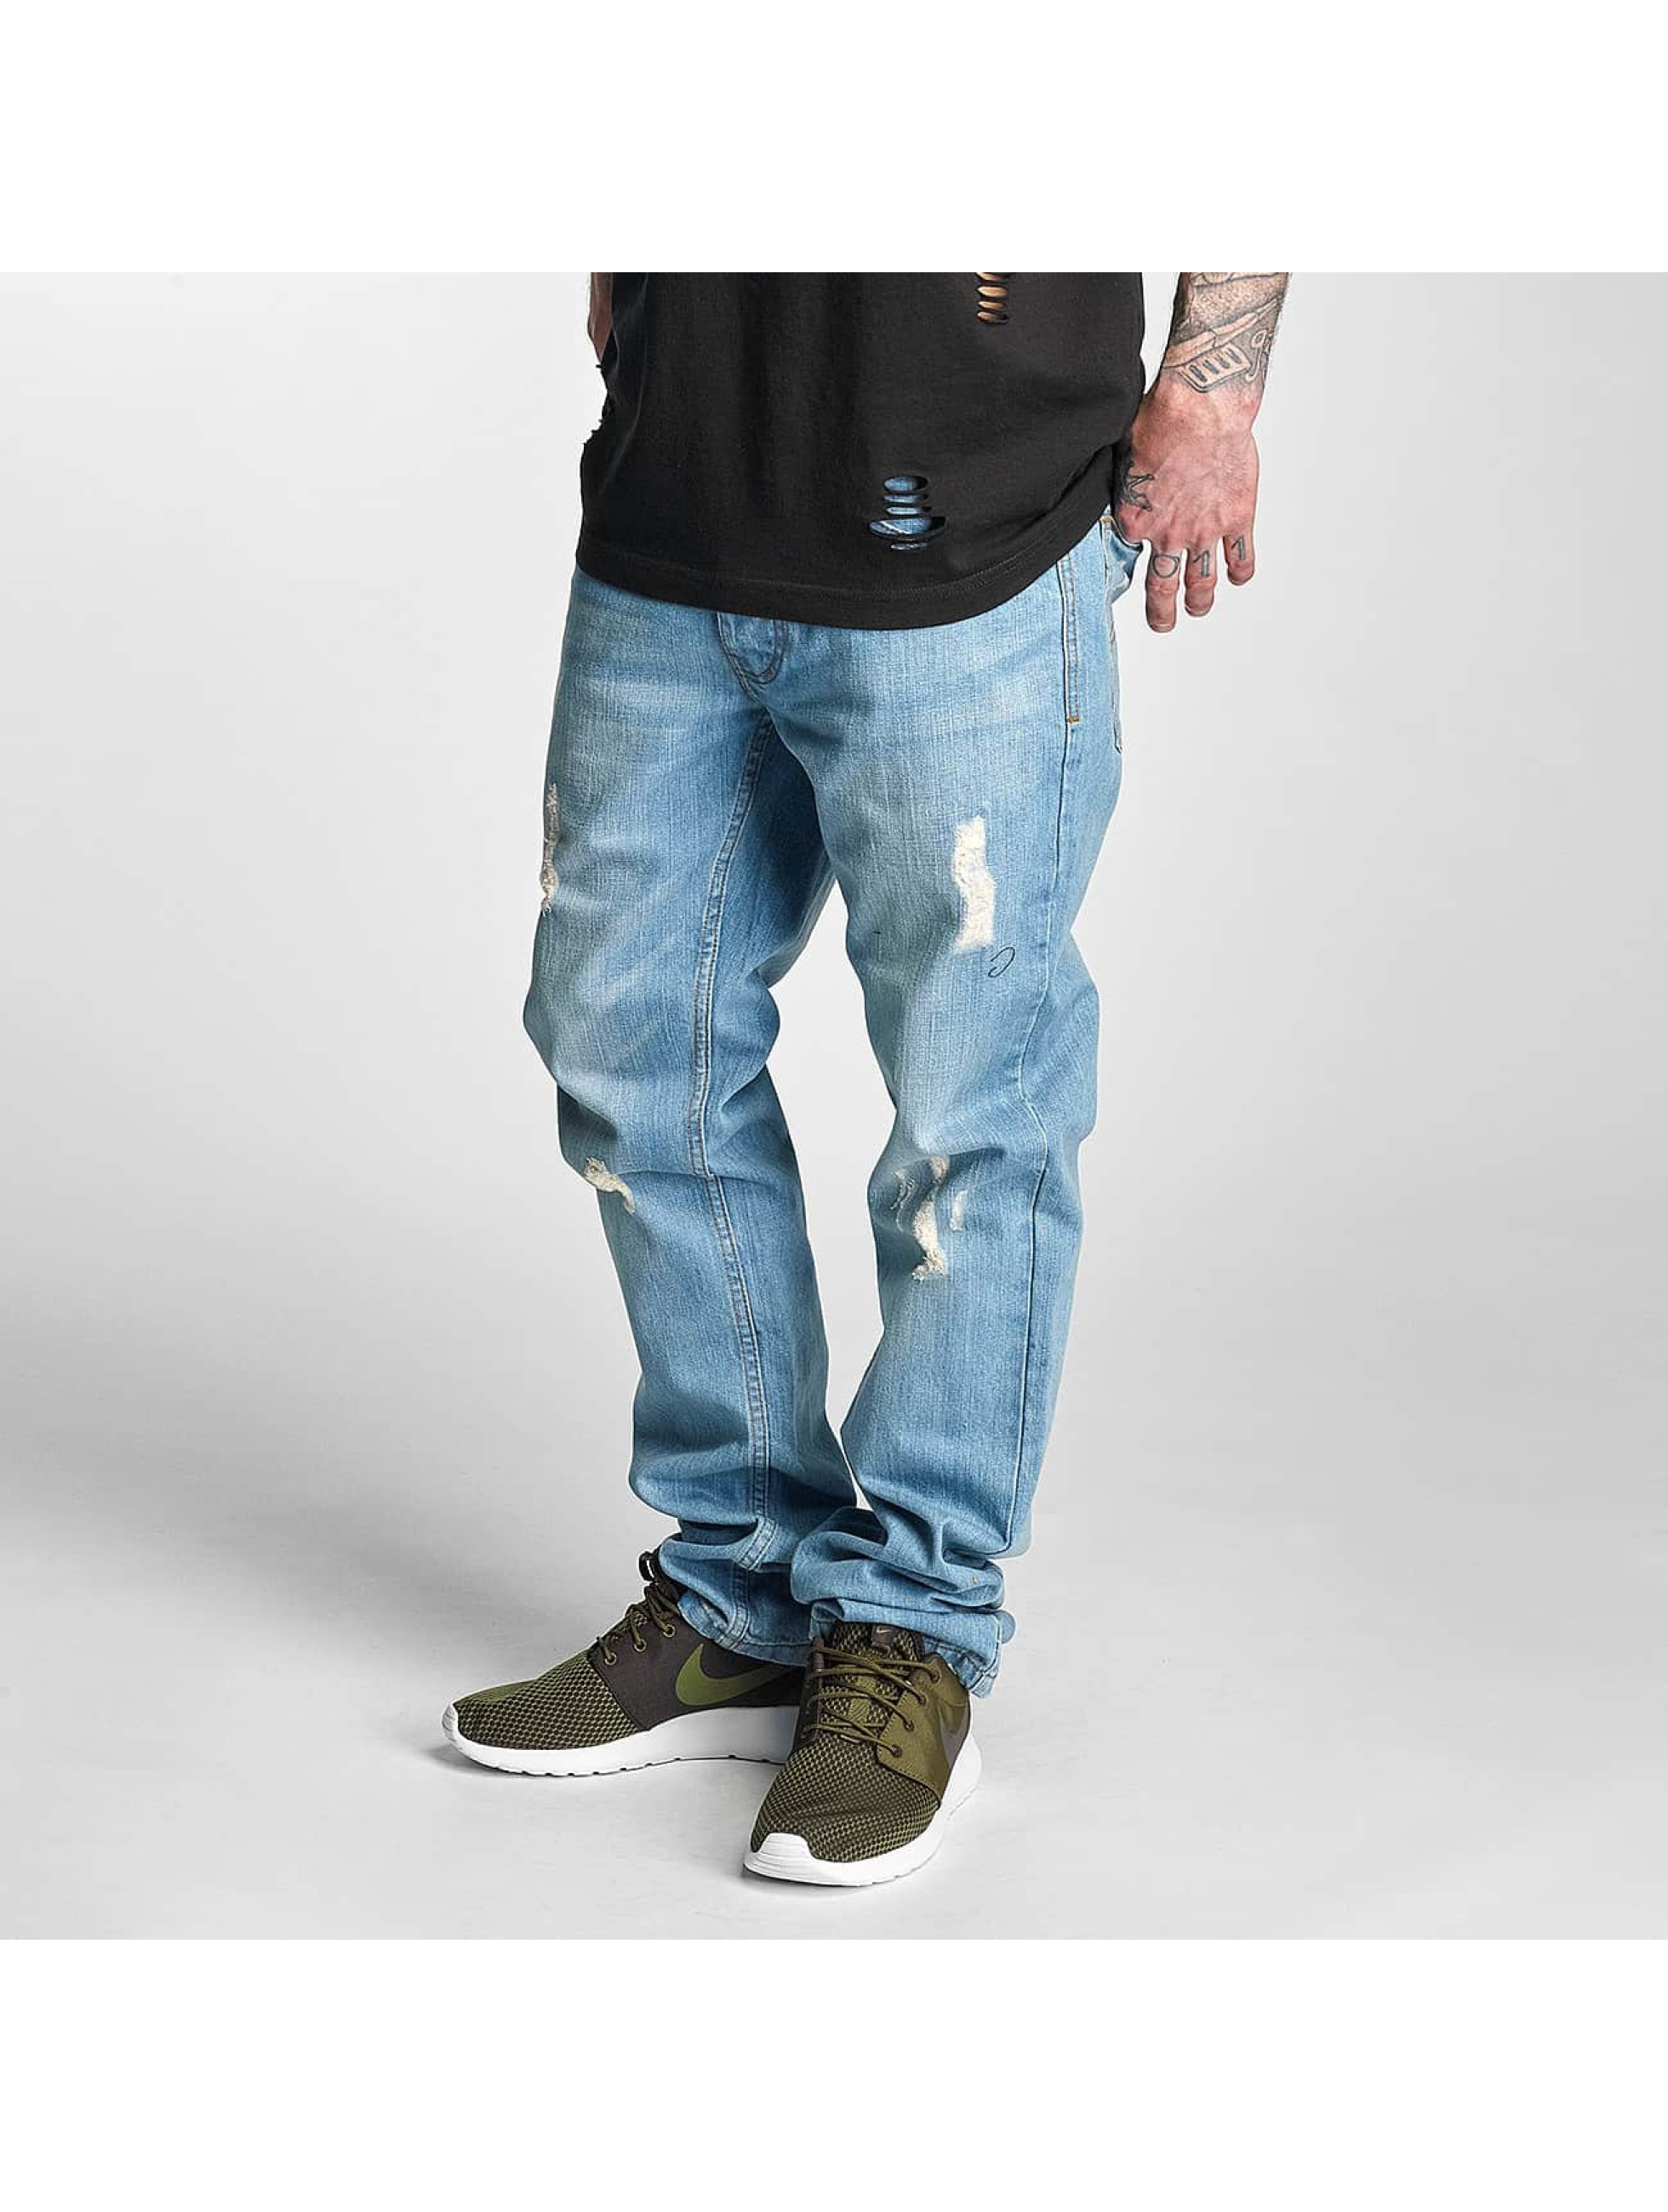 Rocawear / Straight Fit Jeans Relaxed in blue W 34